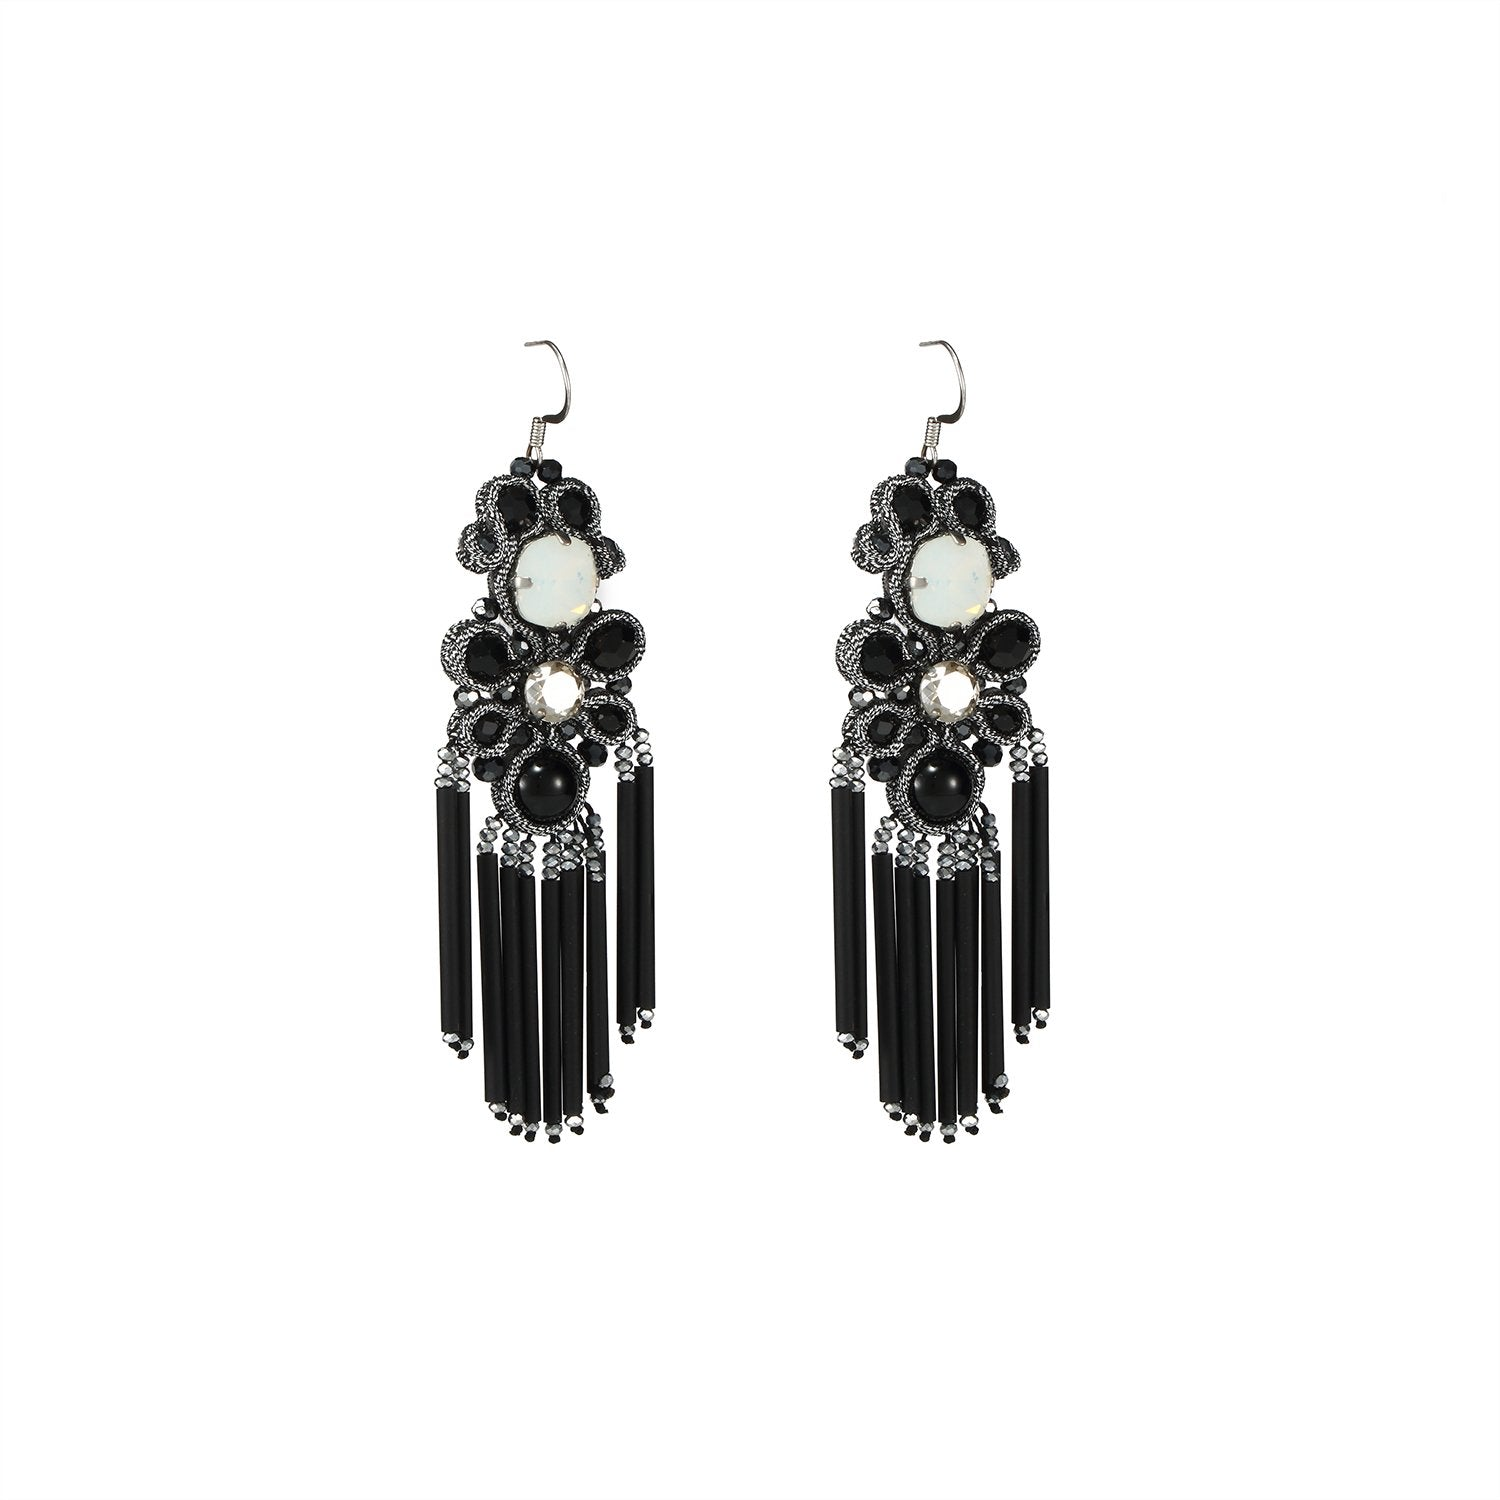 Black Handmade Earrings